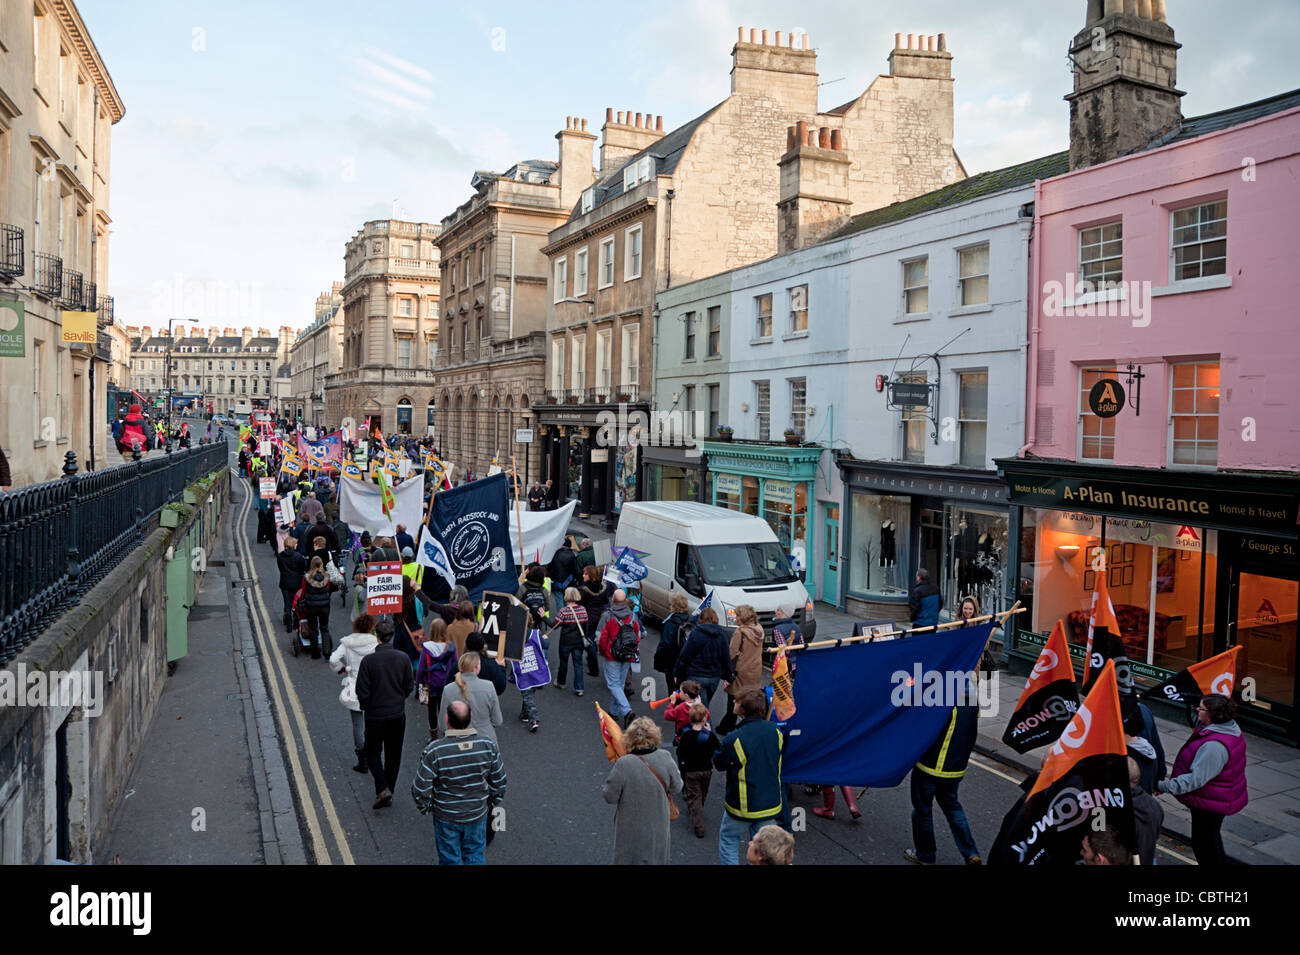 Trade Unions pensions protest march Bath UK - Stock Image